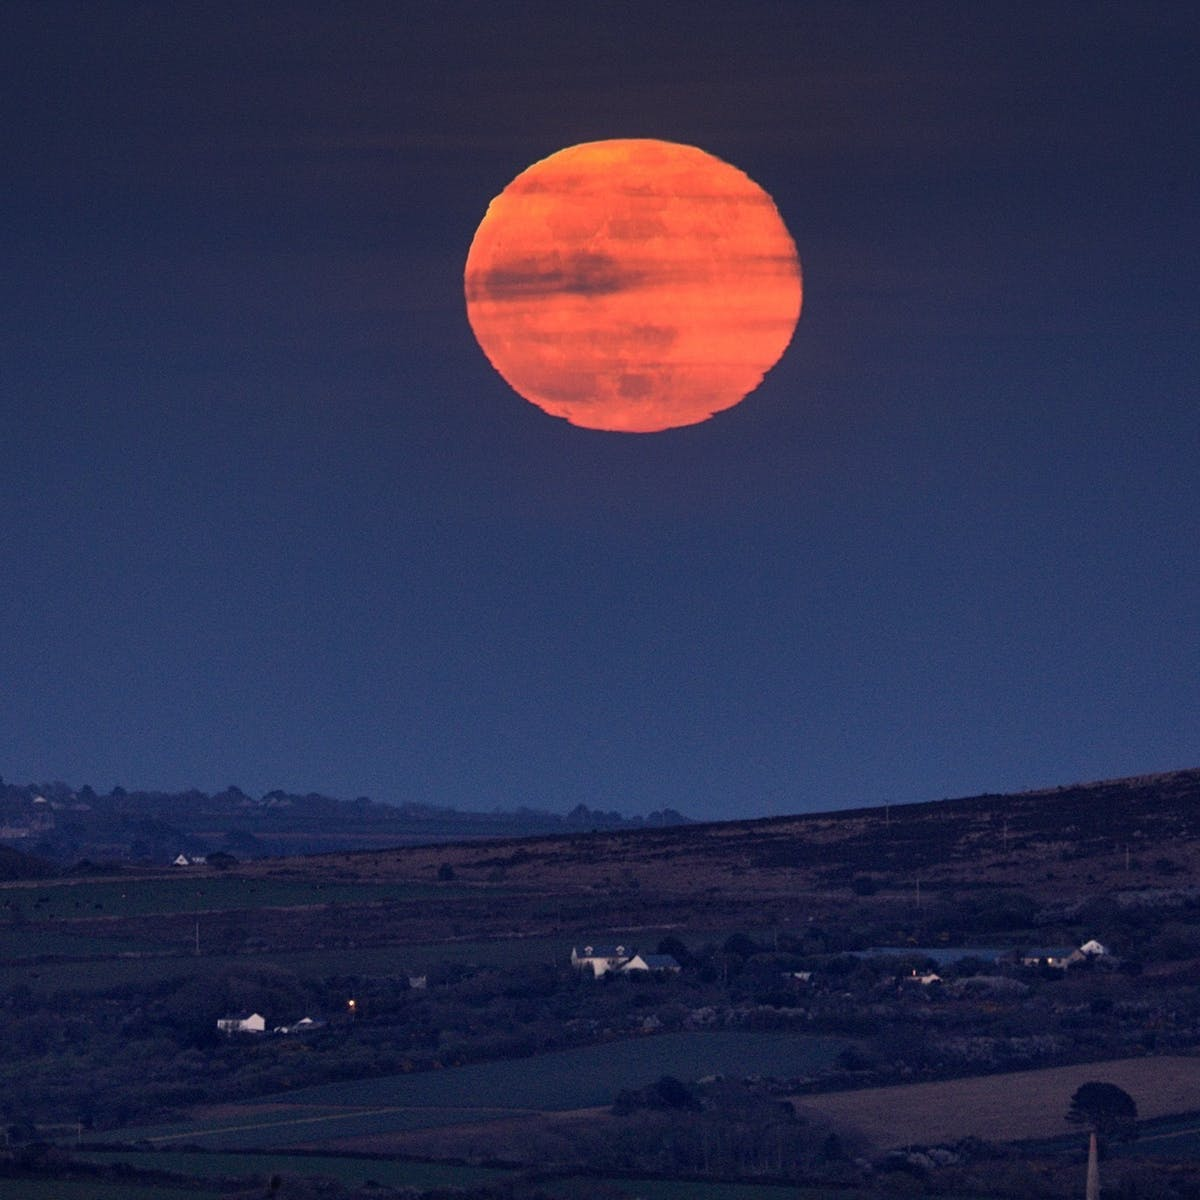 Strawberry Moon Pictures: Stunning Images Capture June's Full Moon Event